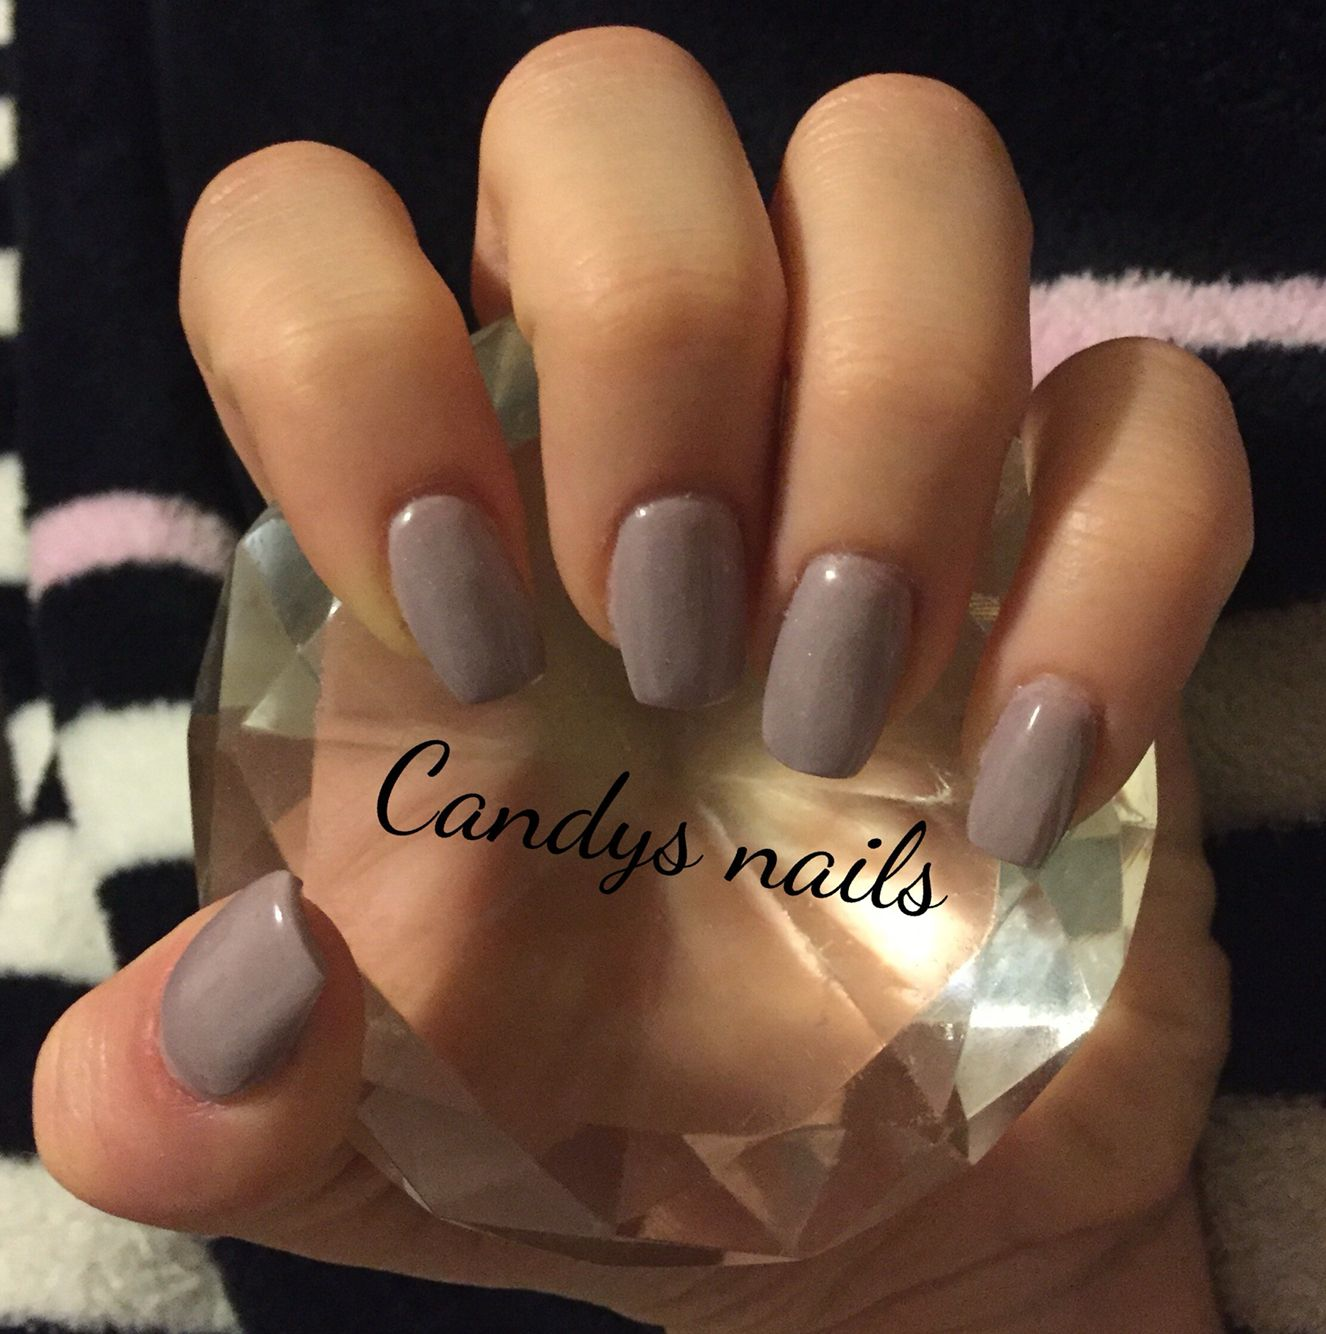 Custom colored acrylic short coffin shaped nails! | Candys Nails ...